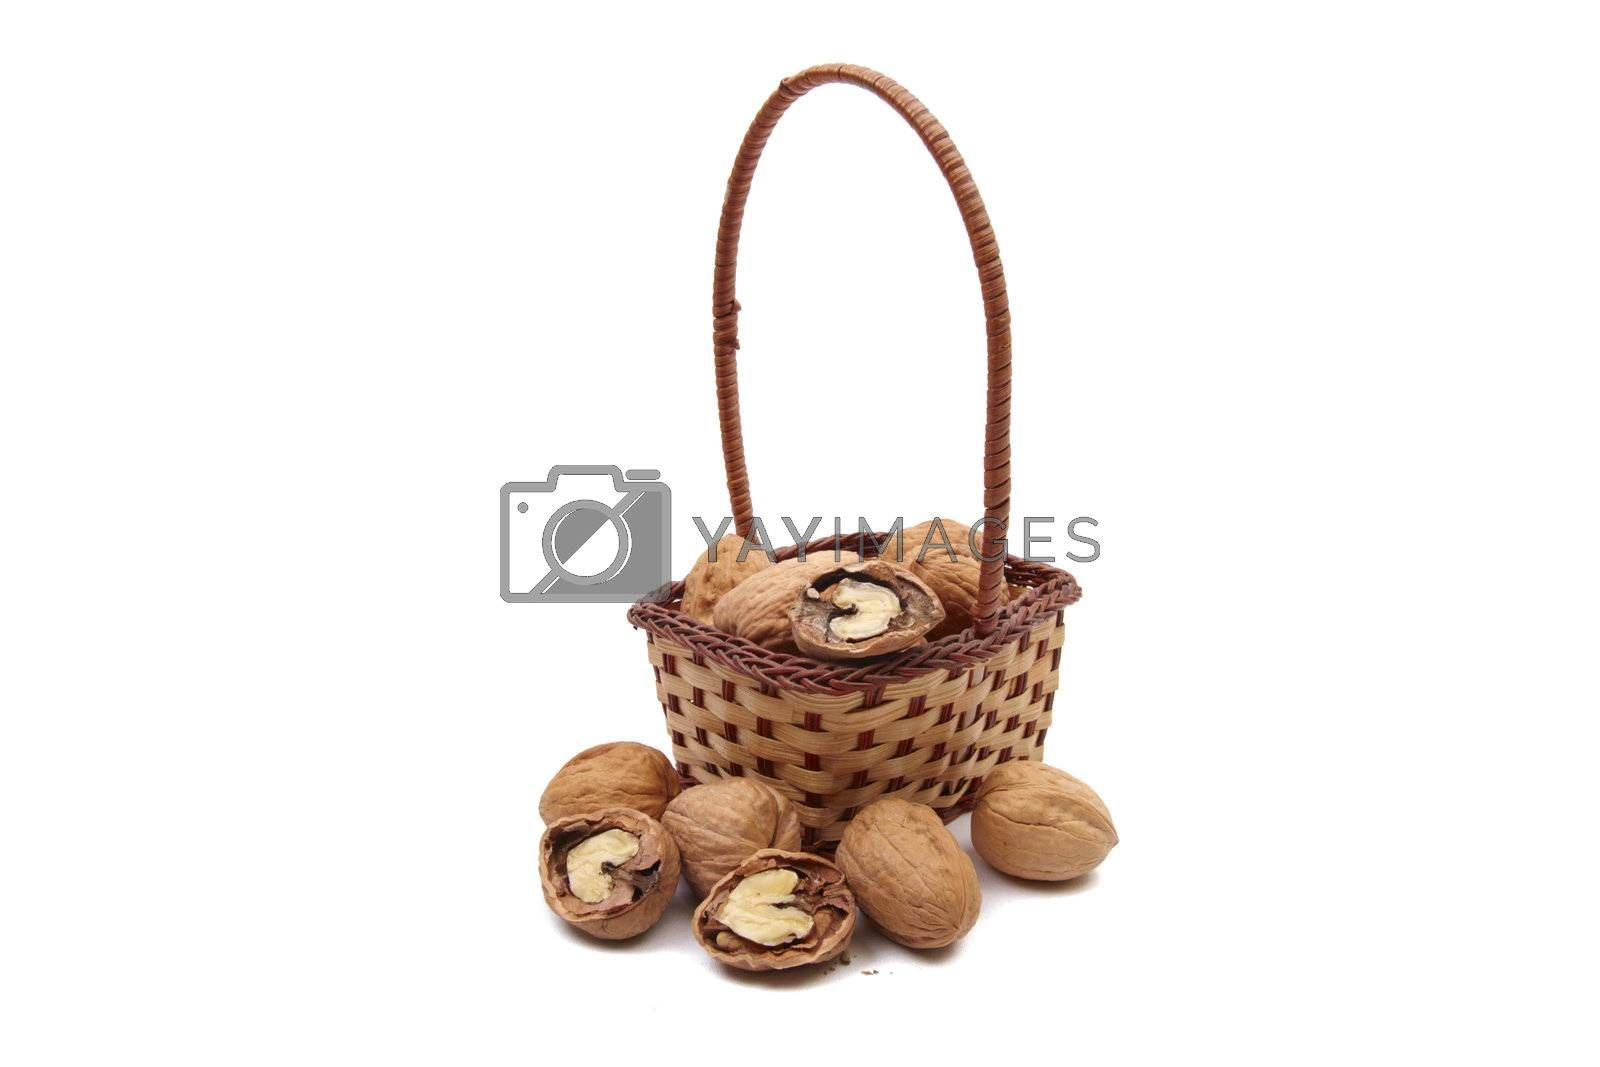 Walnuts in wicker basket isolated on white background